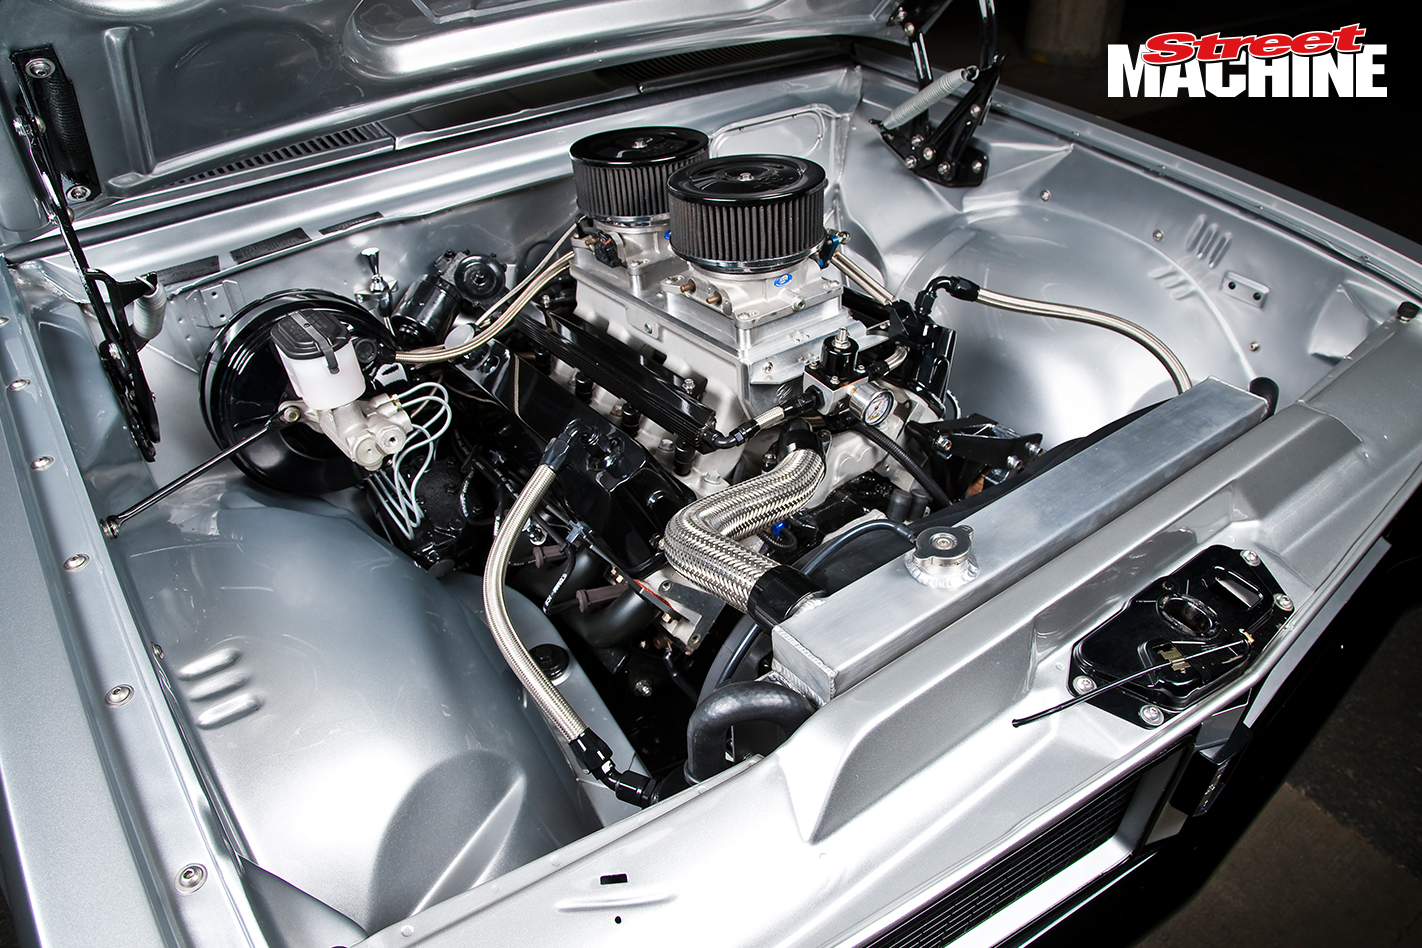 Holden HG Monaro GTS 355 V8 Engine 2